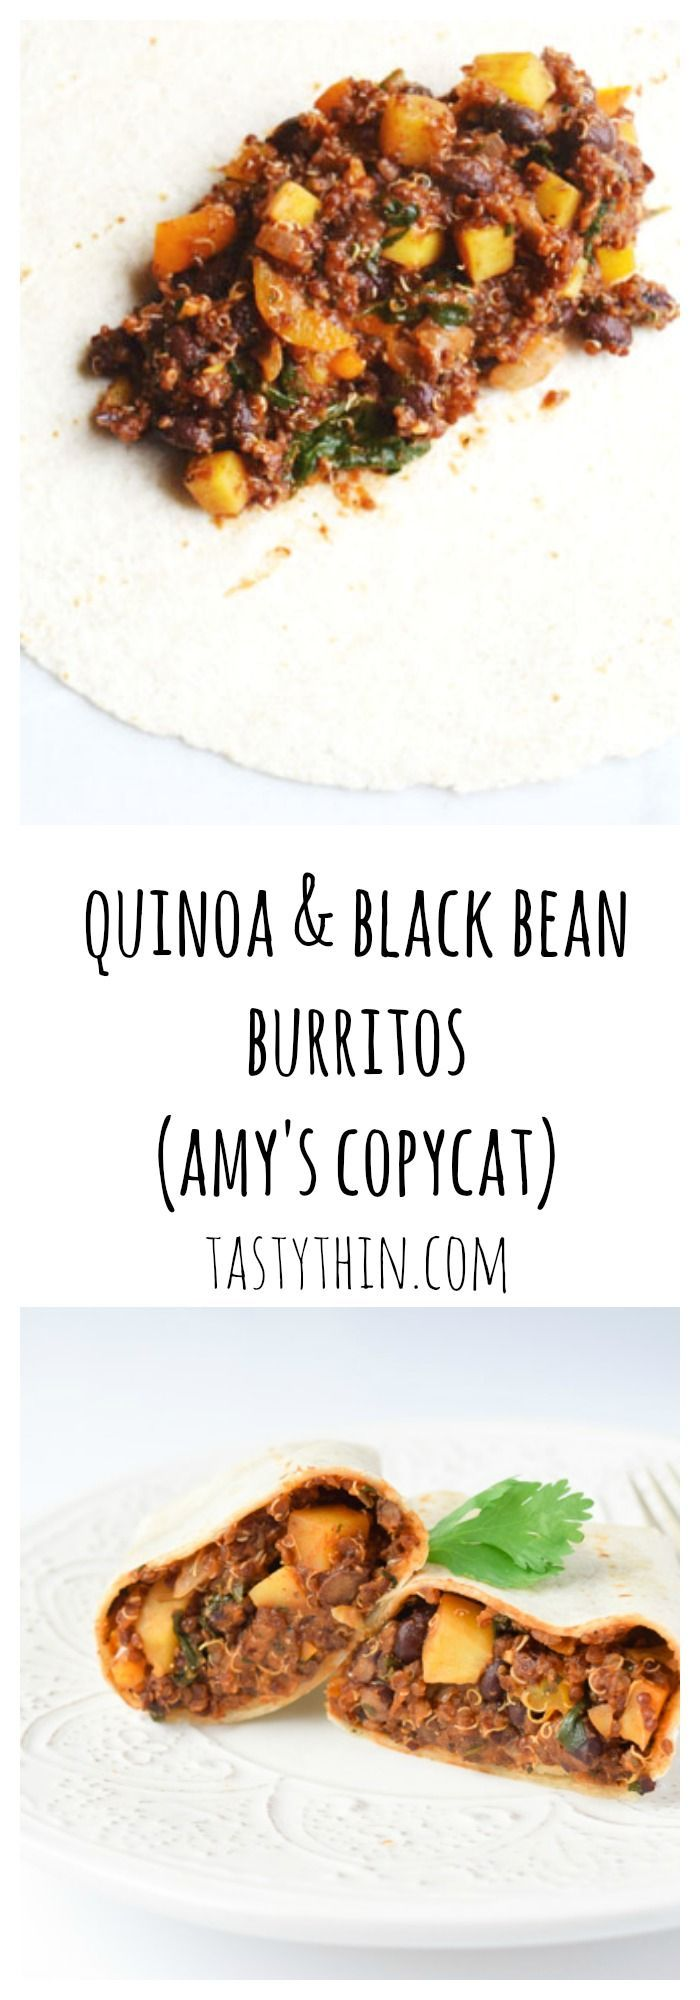 Copycat Amy's Vegan Quinoa Black Bean Burritos - Make ahead, freezable vegan burritos. Inexpensive to make and taste just like the original! | tastythin.com